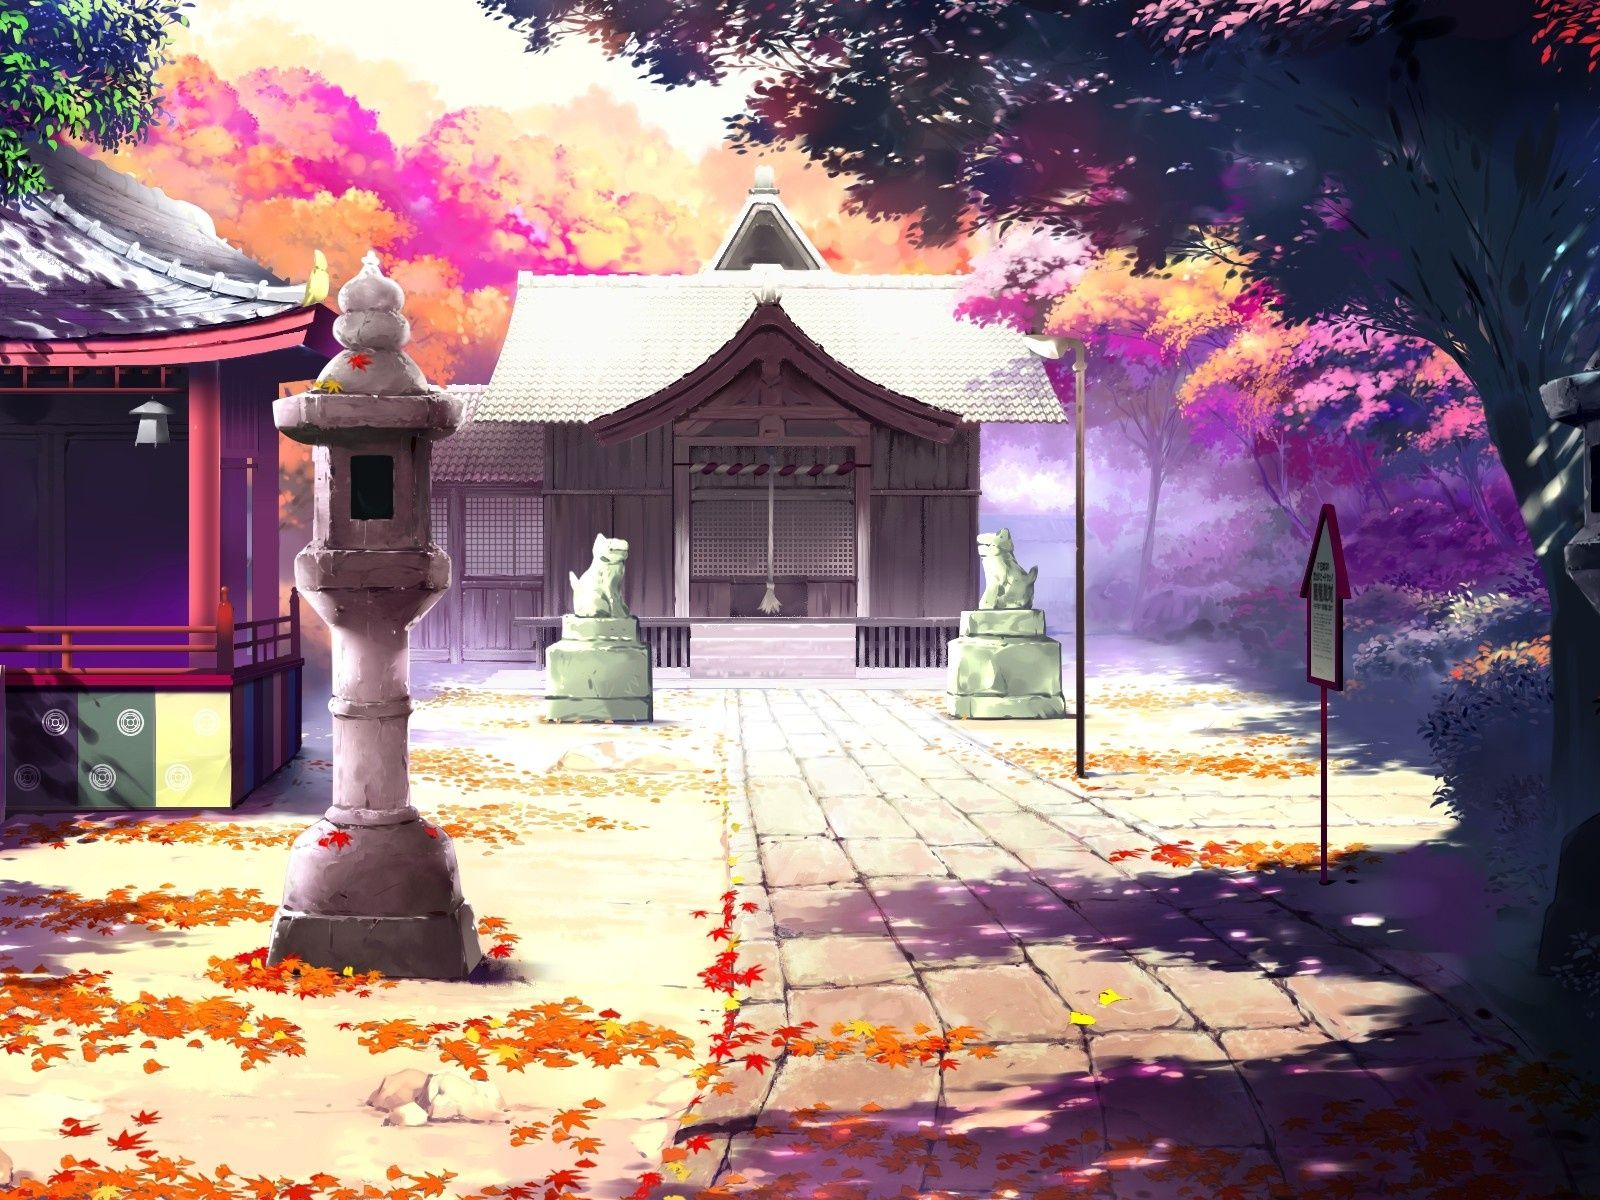 Beautiful Anime Scenery Houses Autumn Wallpaper 1600x1200 Resolution Wallpaper Download Best Wall Anime Scenery Wallpaper Scenery Wallpaper Anime Scenery